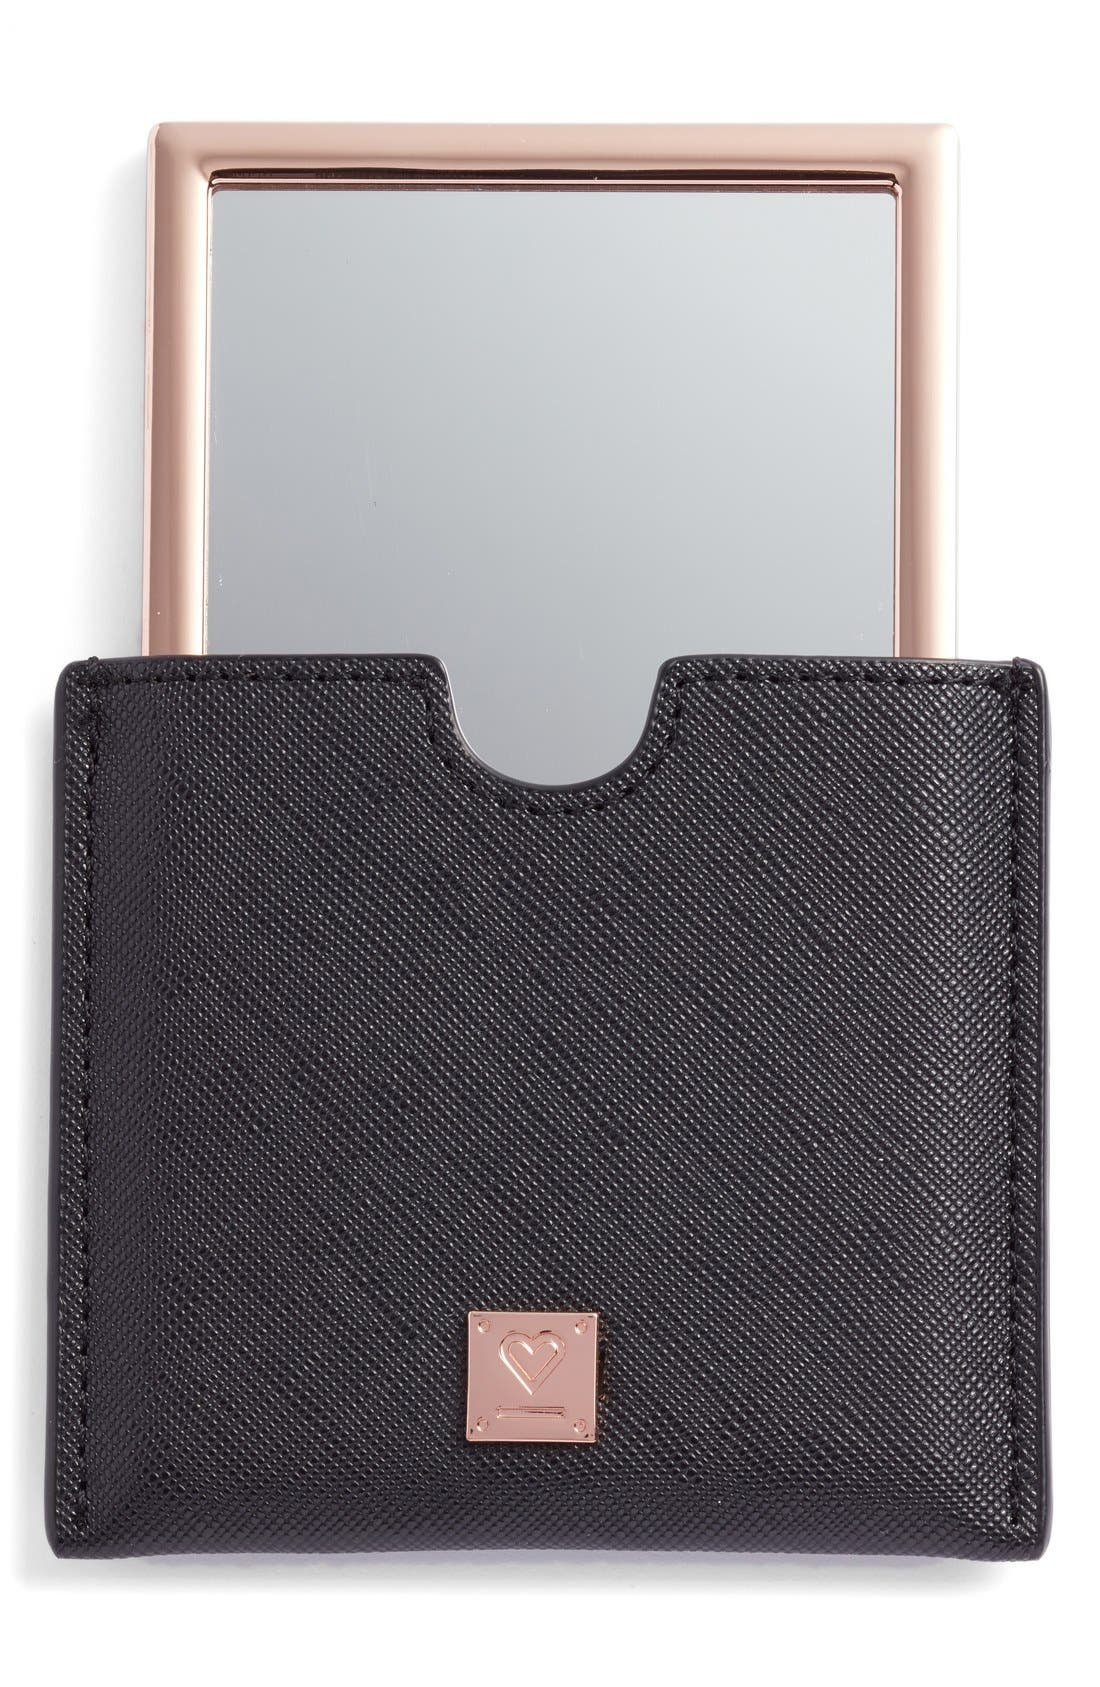 Hello Crush Travel Mirror (Nordstrom Exclusive)